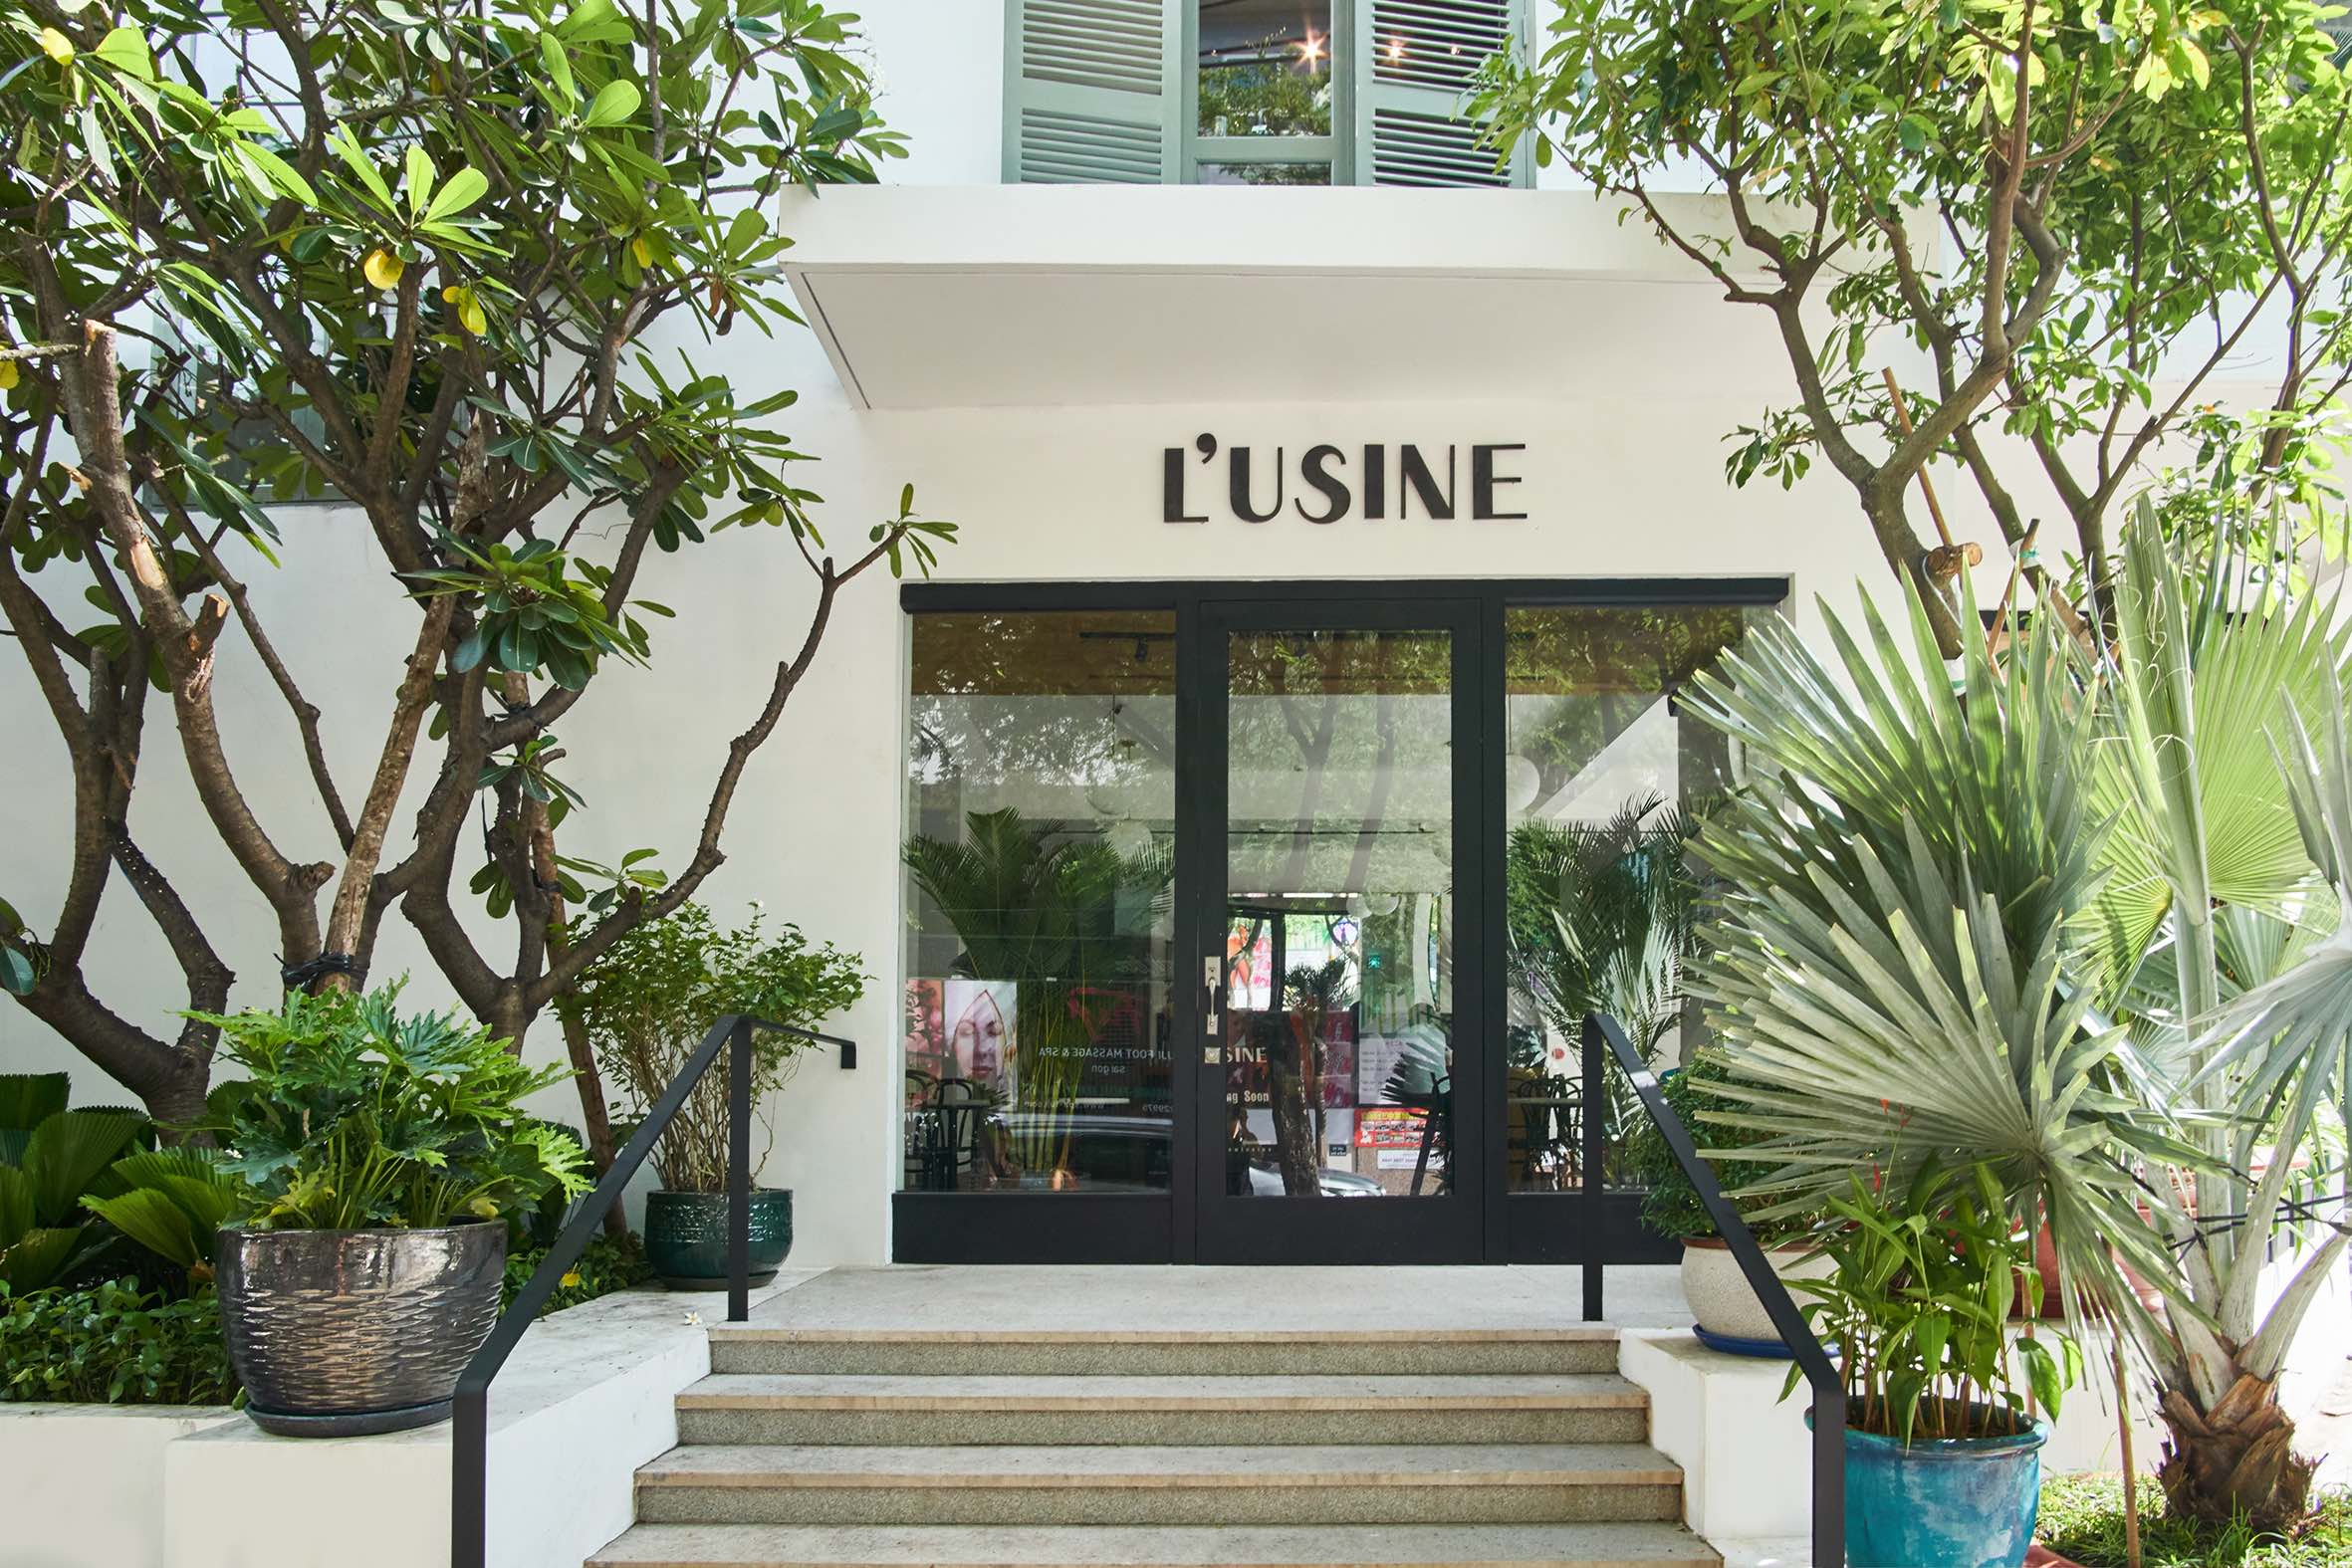 Latest L'Usine Location Set to Propel Brand into New Era | Saigoneer